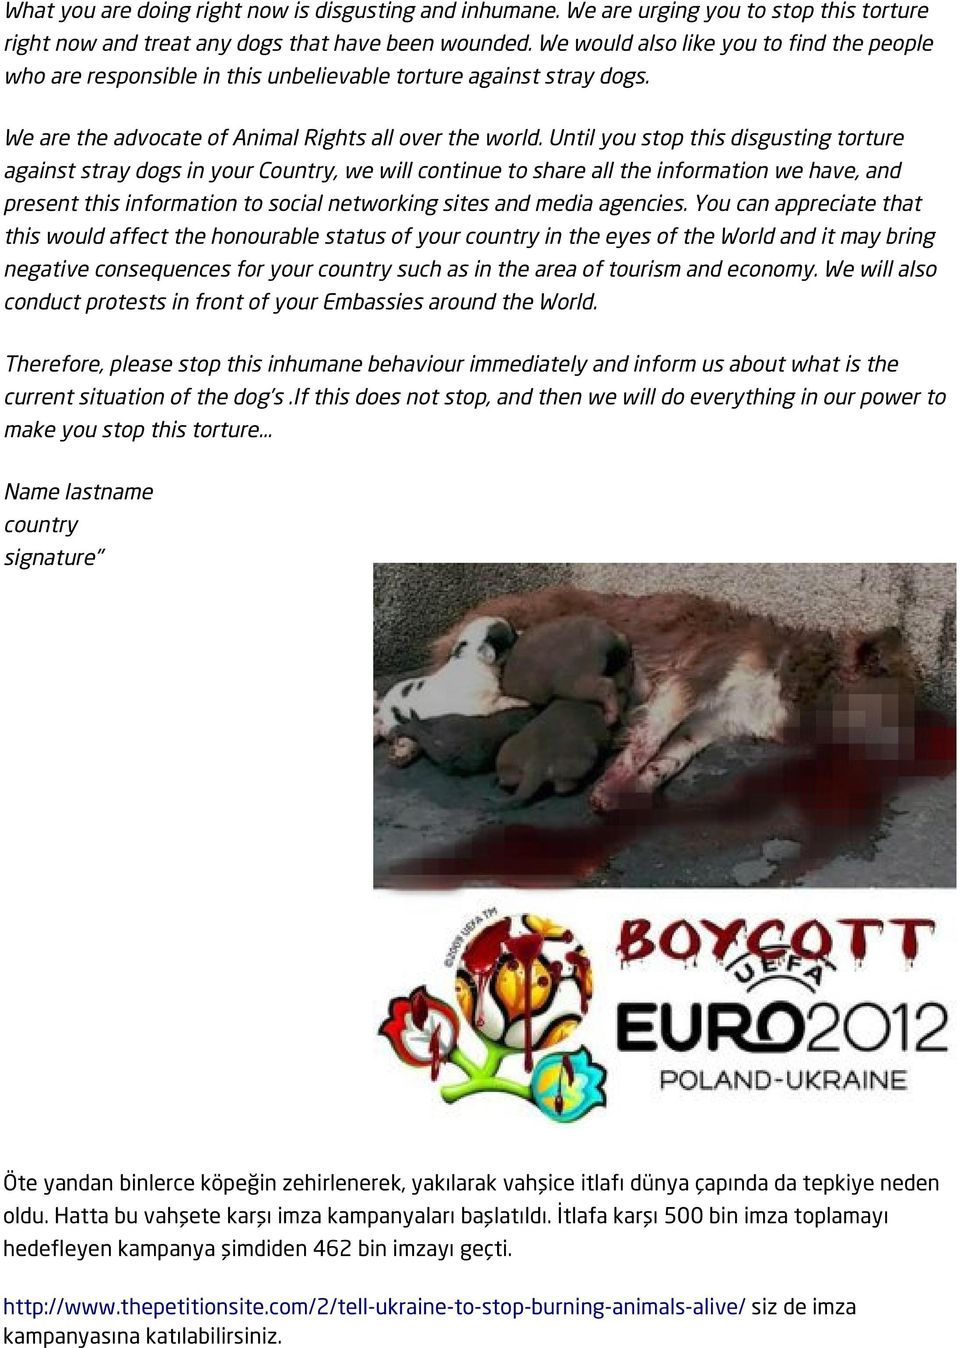 Until you stop this disgusting torture against stray dogs in your Country, we will continue to share all the information we have, and present this information to social networking sites and media